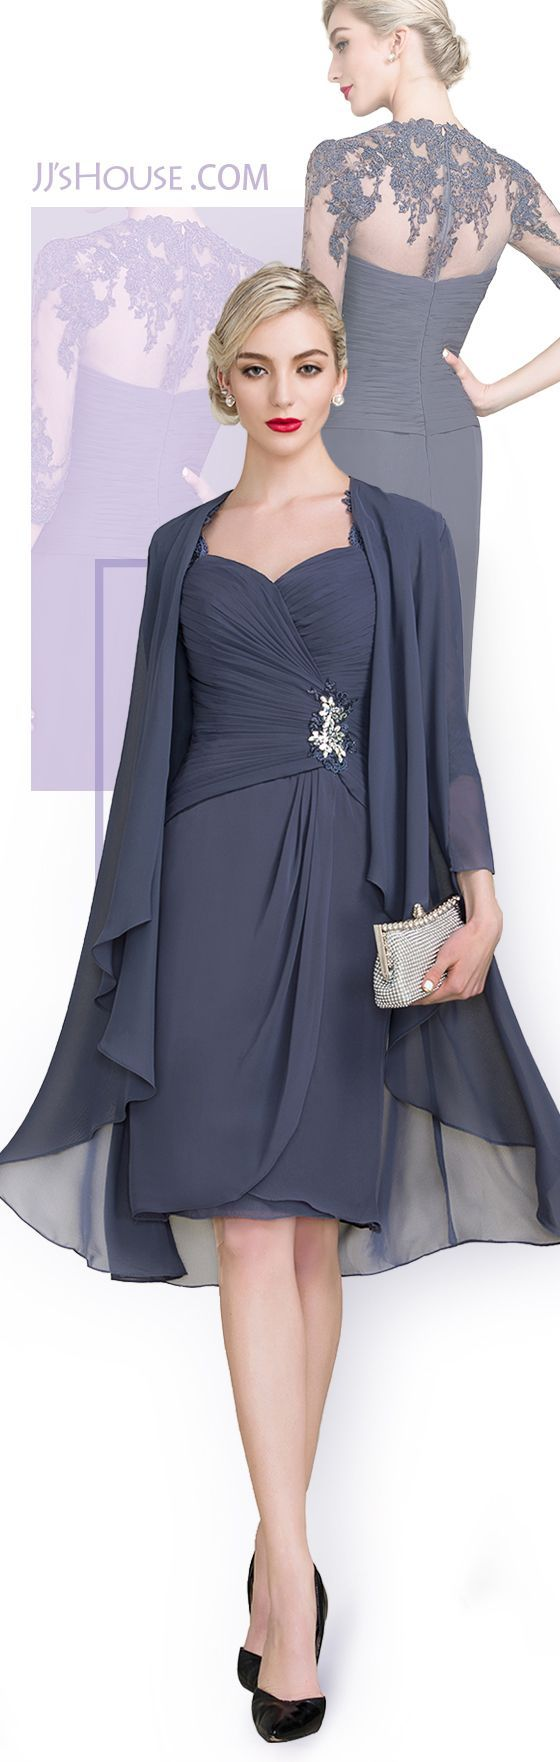 Sheath/Column Knee-Length Chiffon Mother of the Bride Dress With Ruffle Beading Appliques Lace Sequins  #JJsHouse